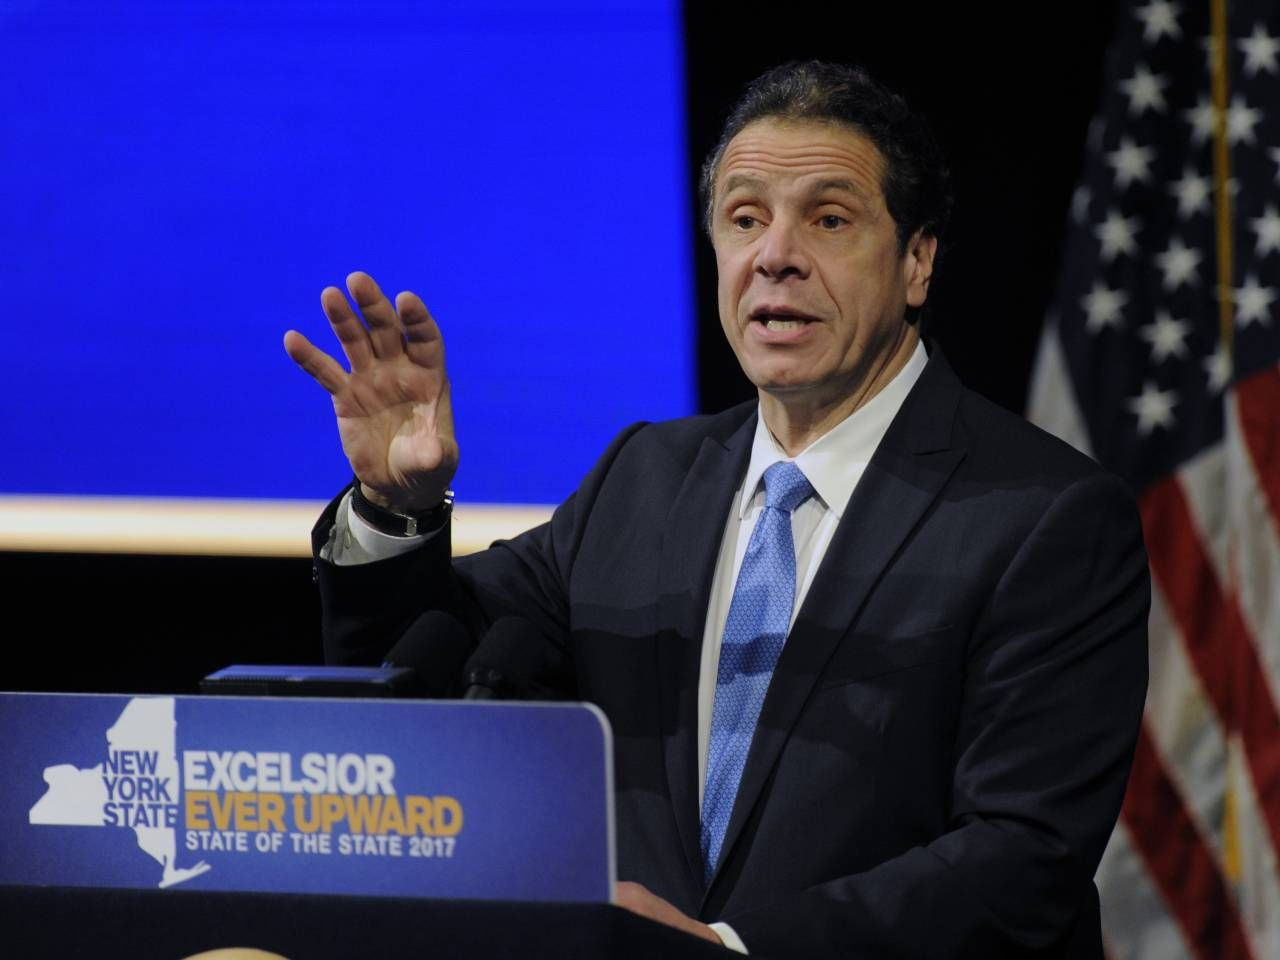 Trumping Trump New York Governor Andrew Cuomo Courts Middle Class Anger With Images Trump New Middle Class Investing